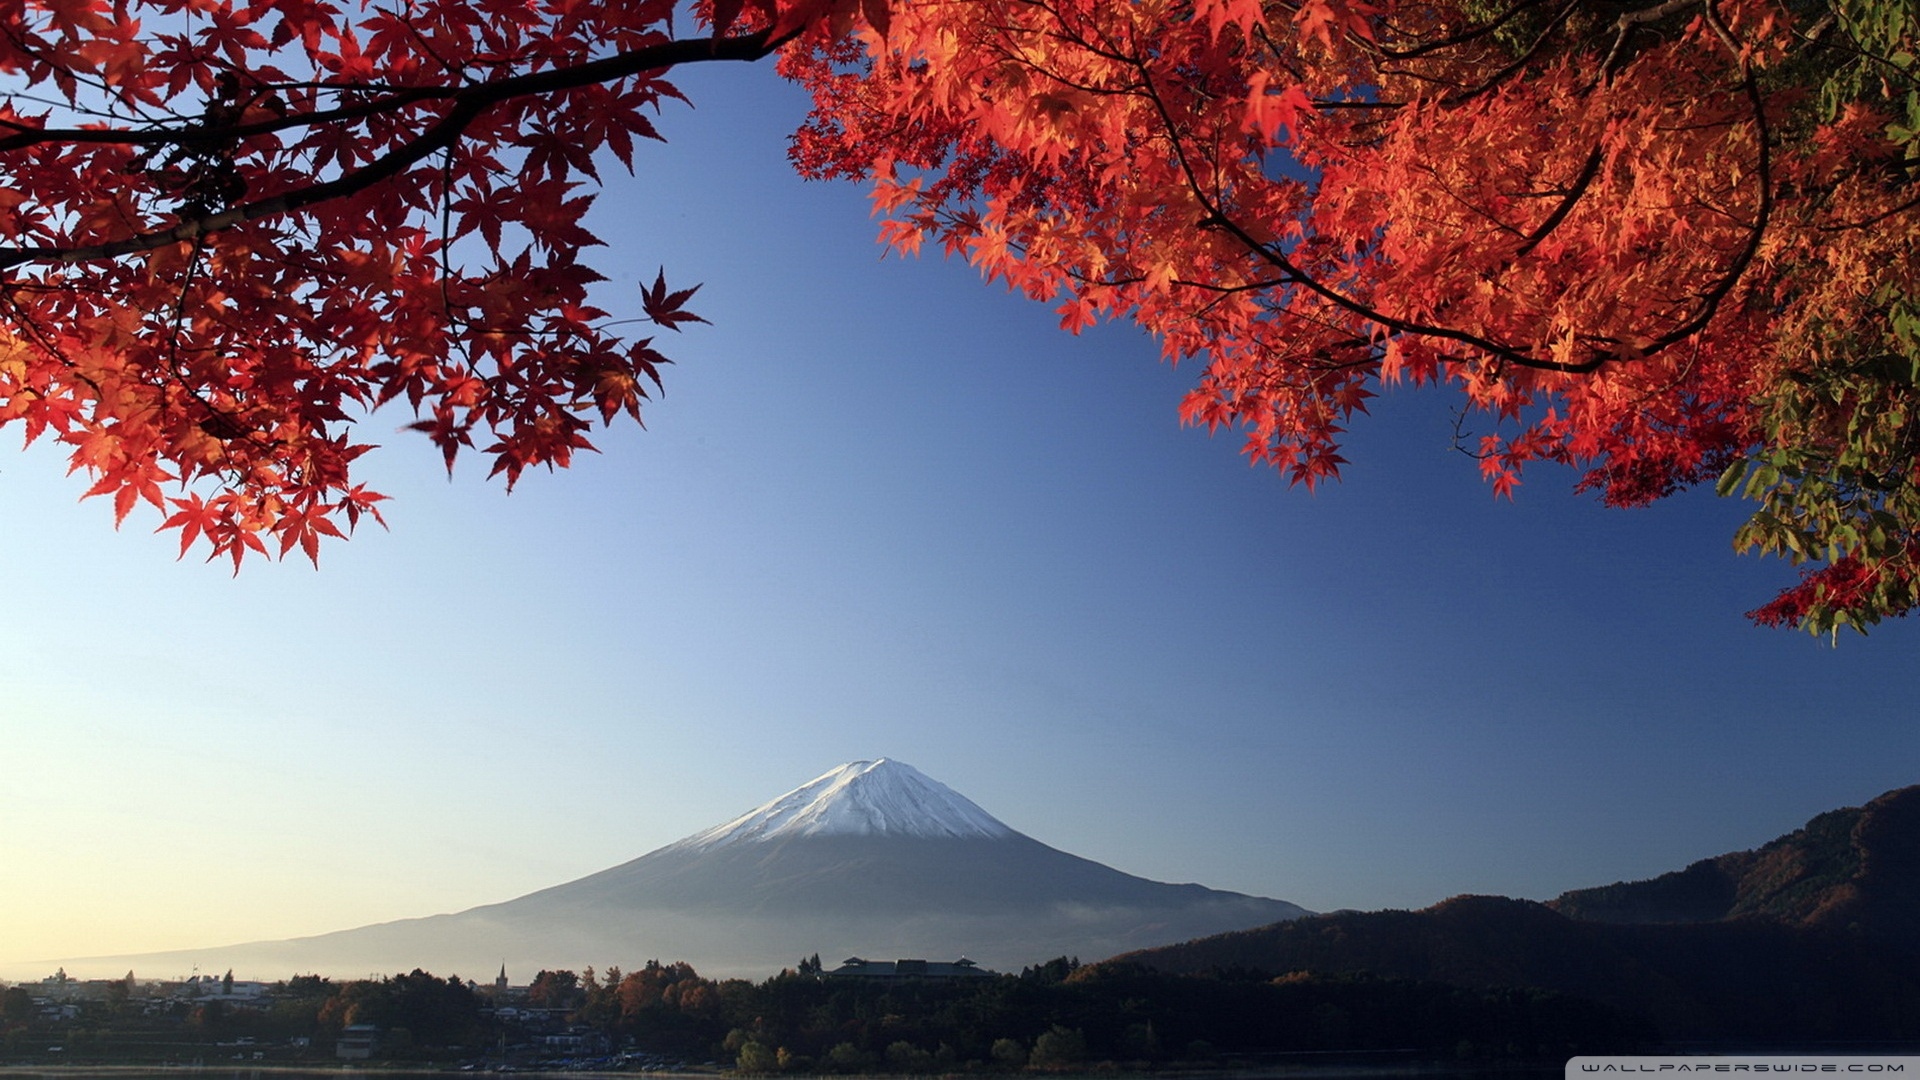 Autumn Mount Fuji Japan Wallpaper 1920x1080 Autumn Mount Fuji Japan 1920x1080